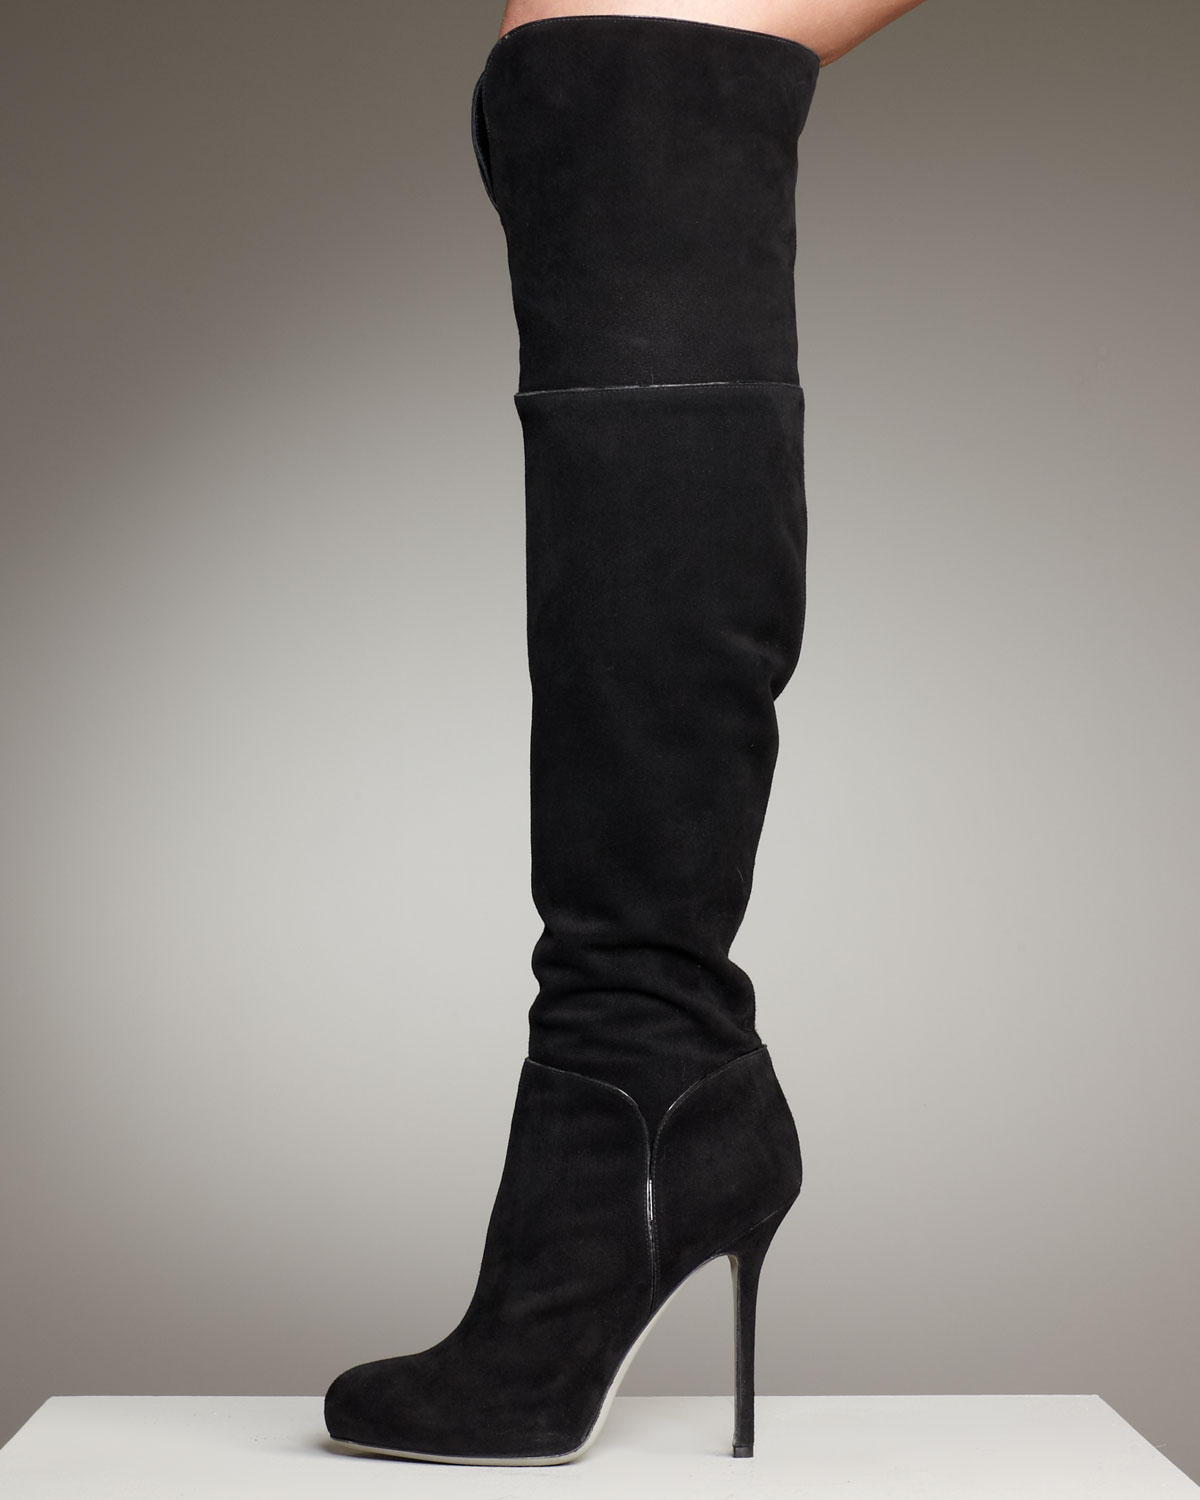 Sergio Rossi Suede Embossed Over-The-Knee Boots free shipping low price fee shipping outlet cheapest price affordable for sale tdT5LZK